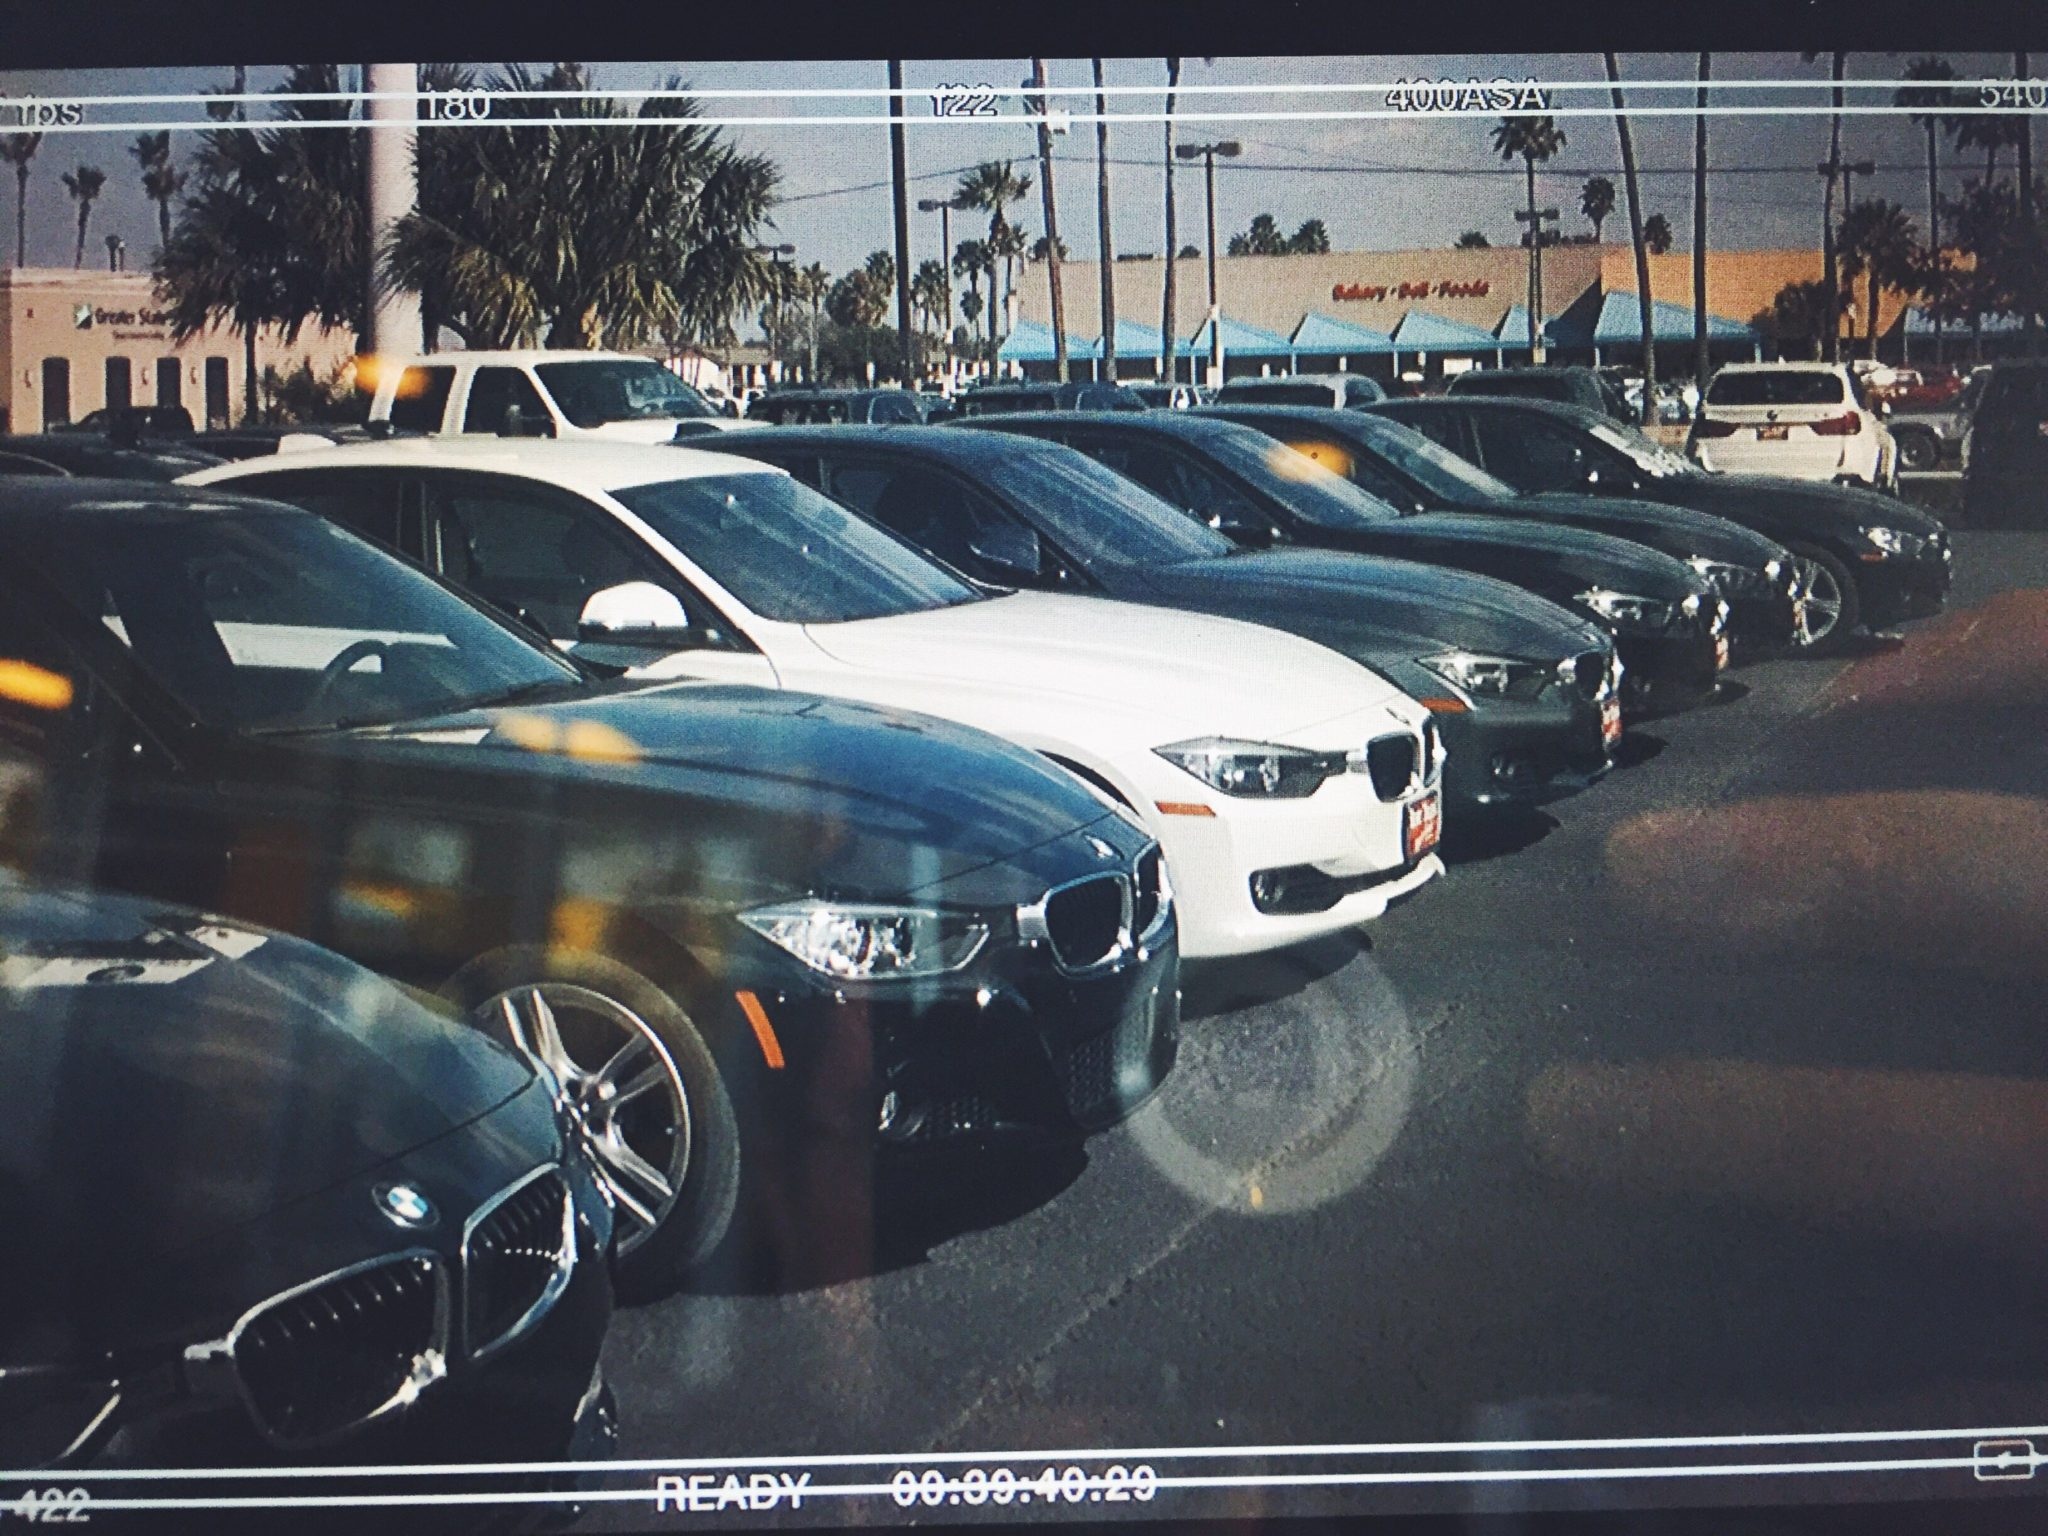 Later that day I was shooting footage at their BMW dealership. This is the view through the SmallHD AC7. Note the reflection of my iPhone 6 in its Otterbox.